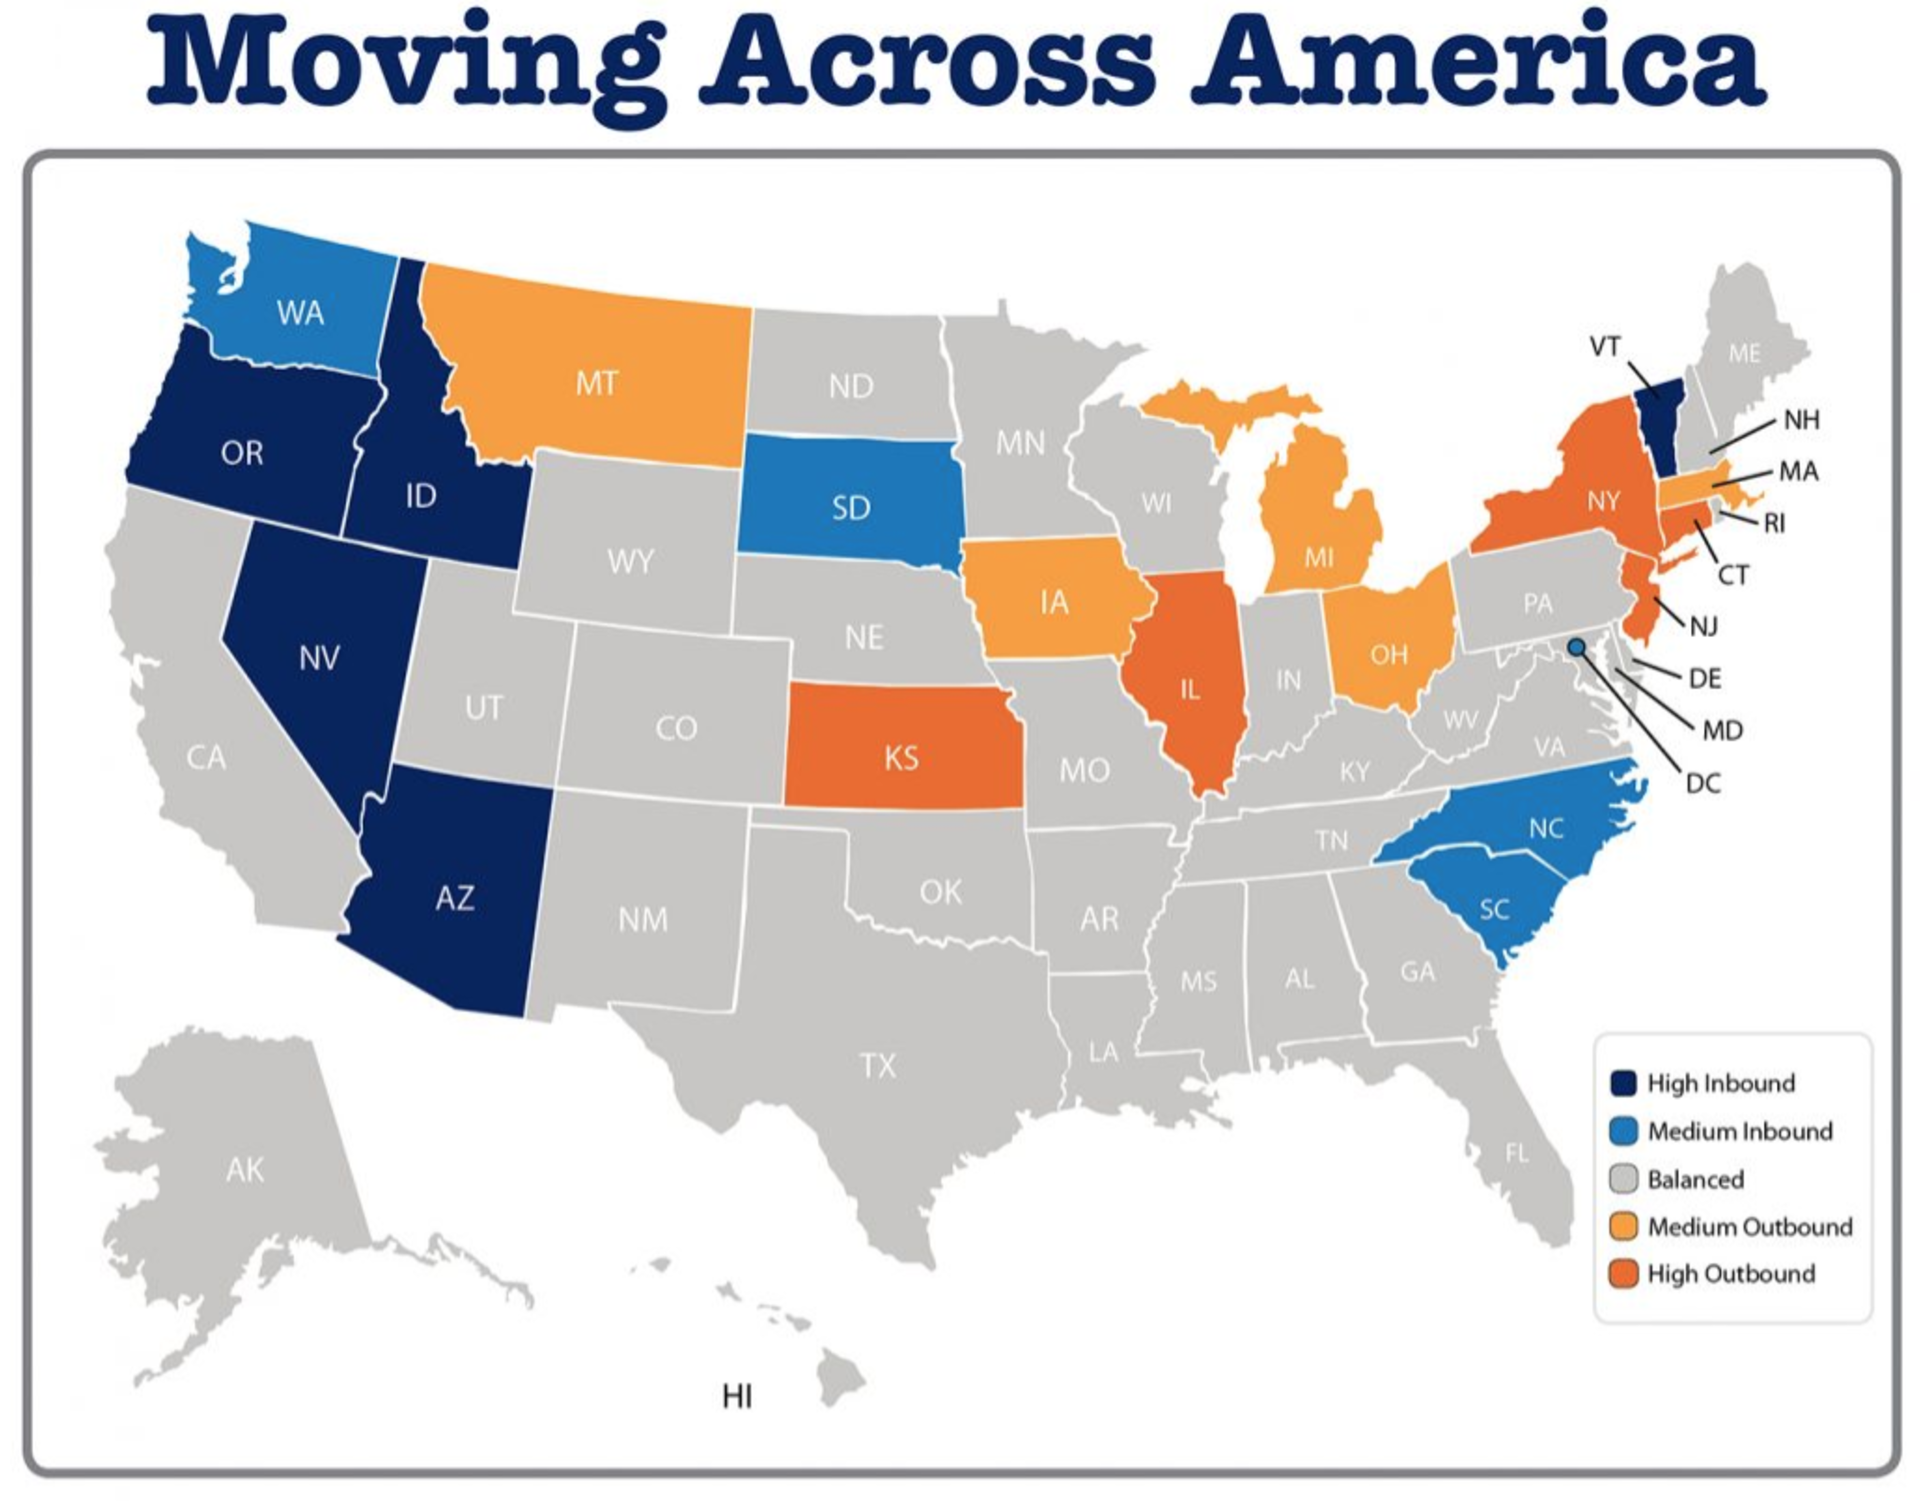 Where Did Americans Move in 2018?